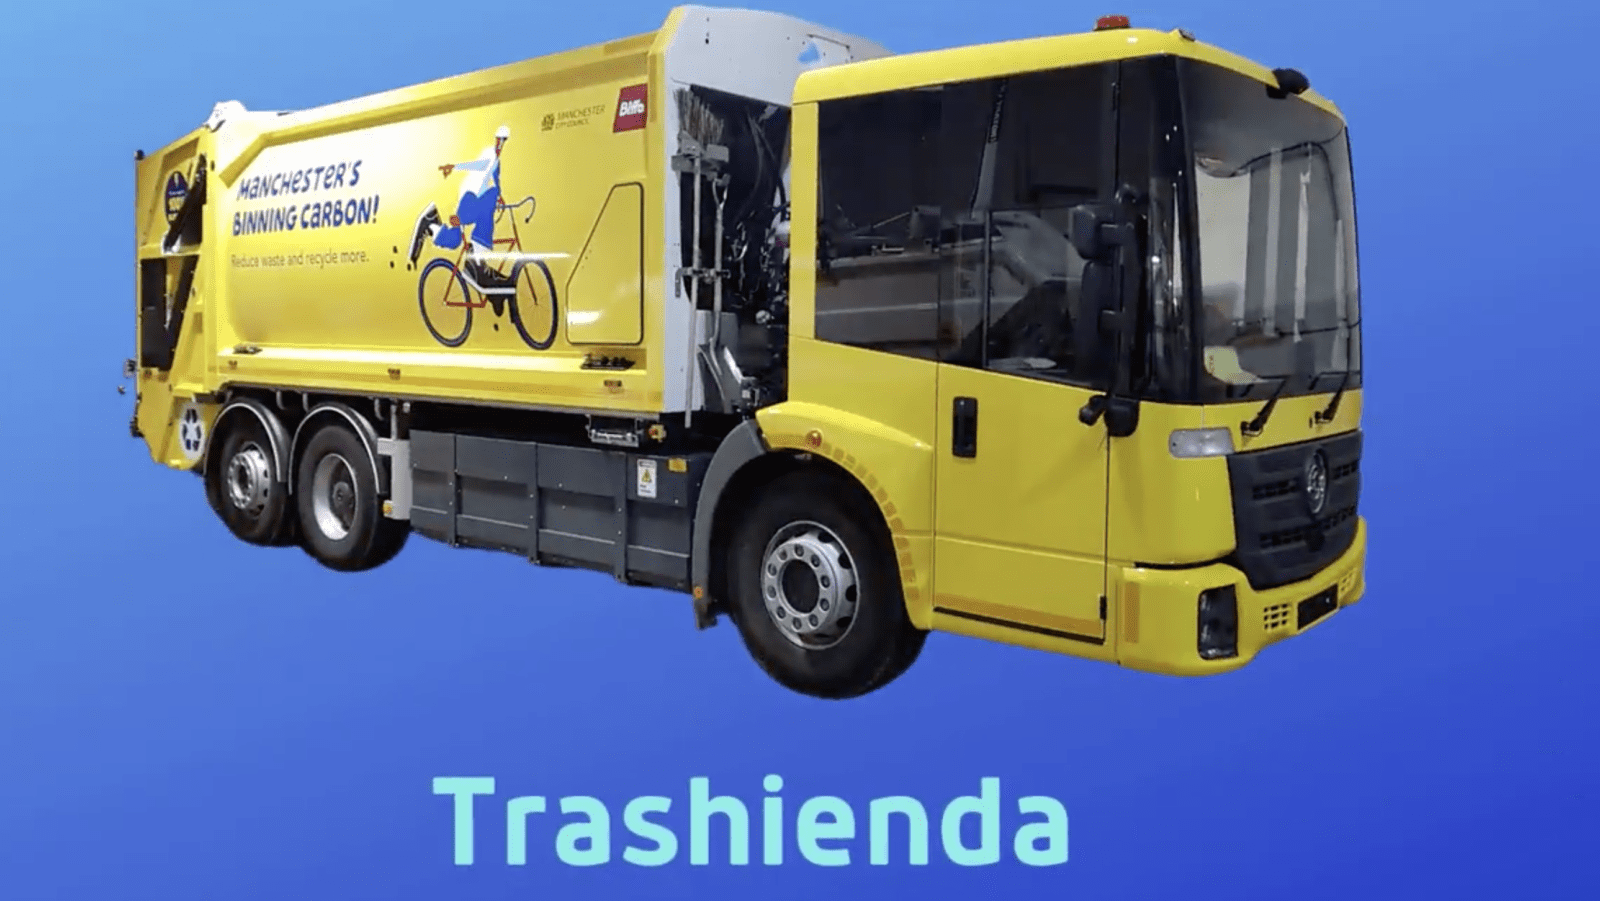 Manchester's new electric bin lorries have been named by the public, The Manc